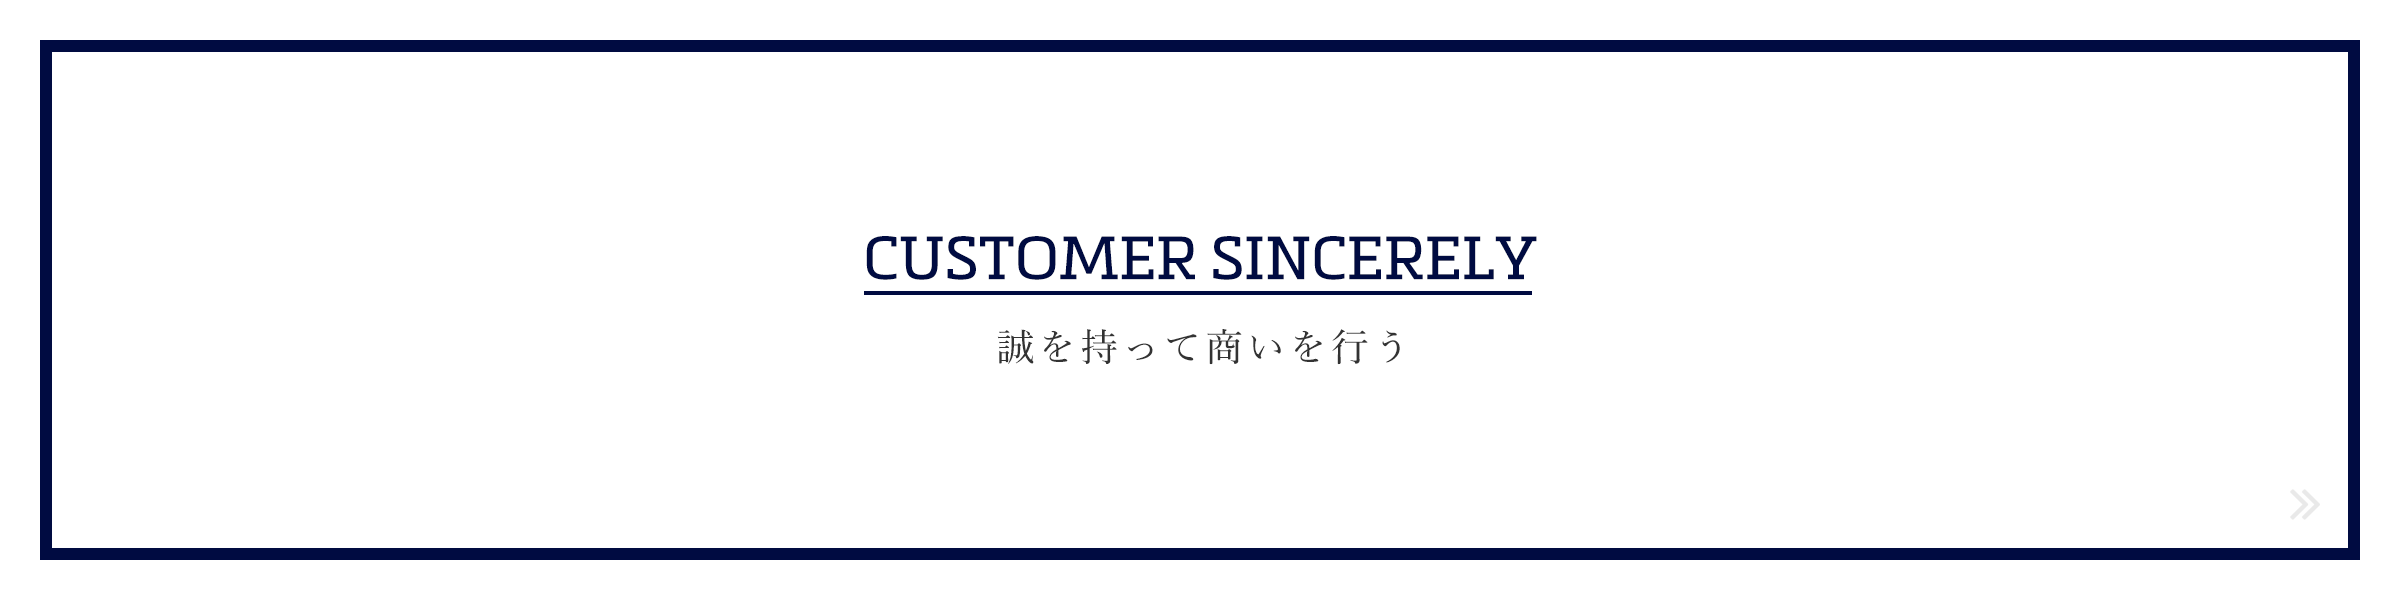 CUSTOMER SINCERELY / WITH SINCERITY FOR OUR VALUABLE CUSTOMERS